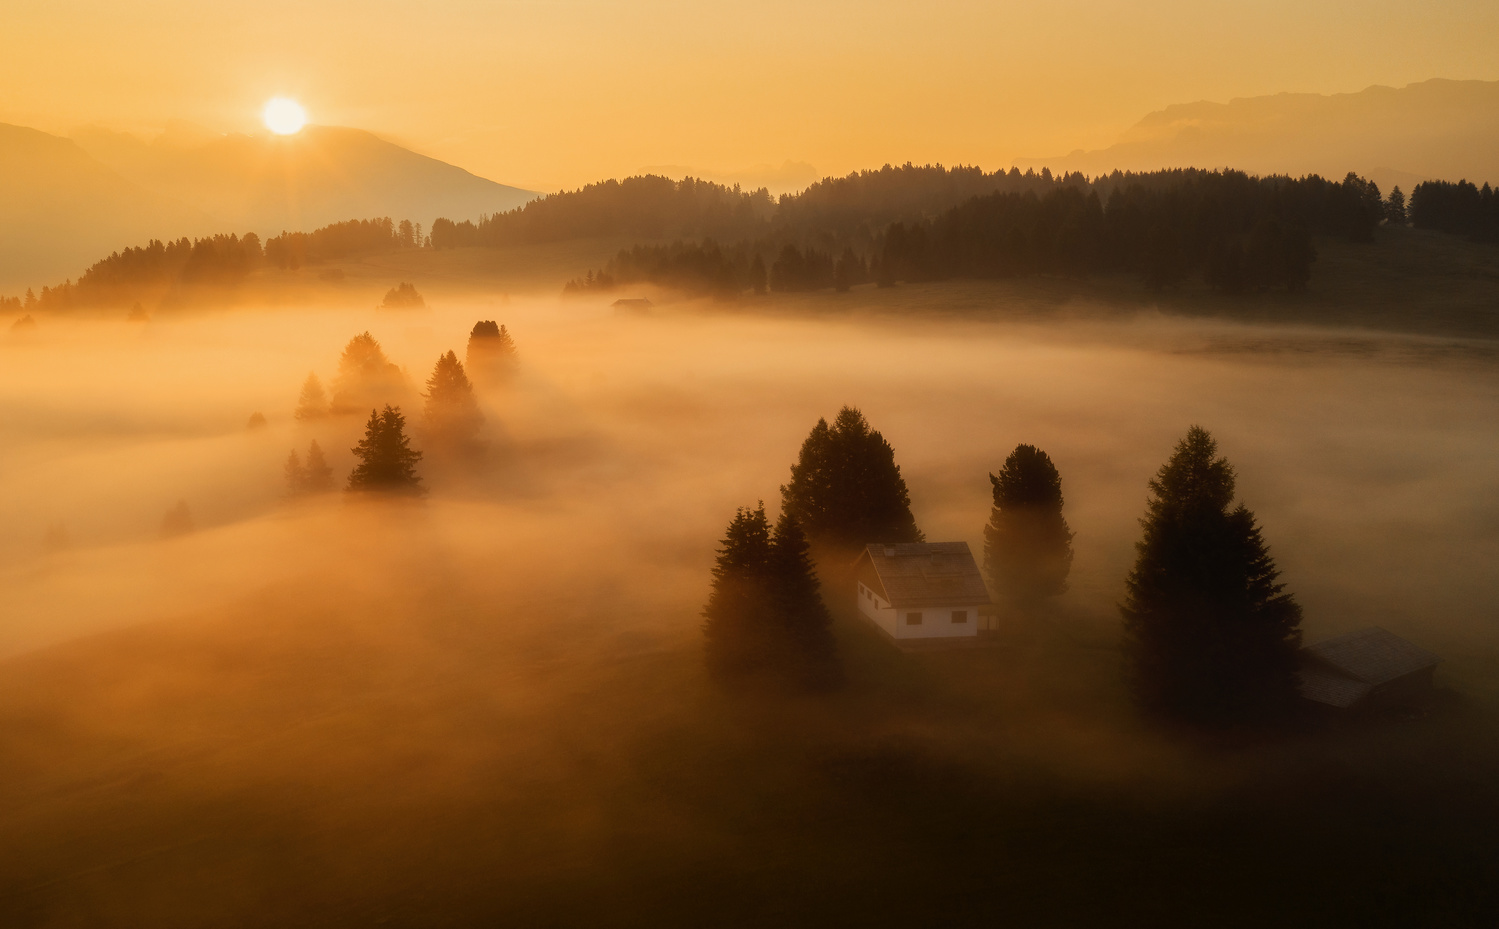 Morning mist by Ales Krivec